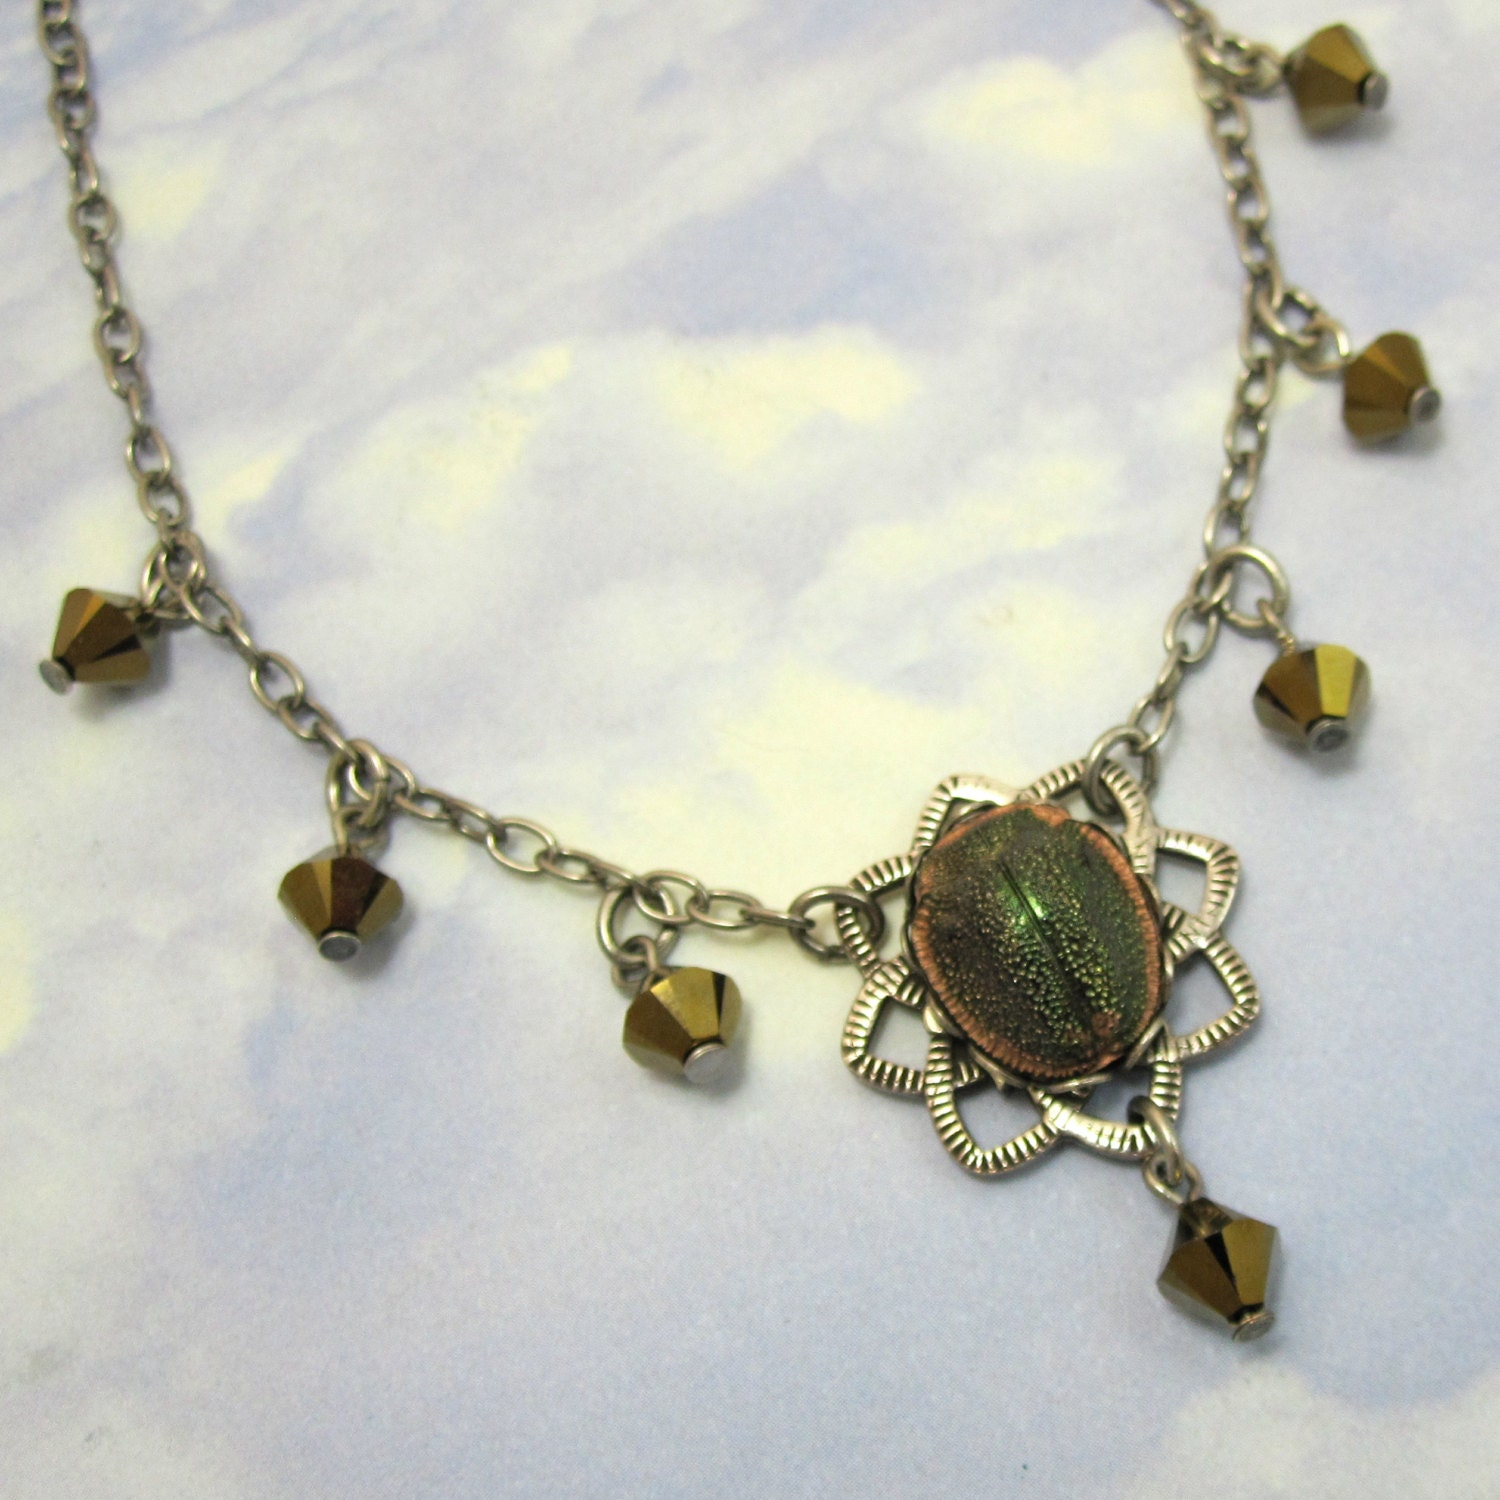 egyptian scarab necklace - photo #34